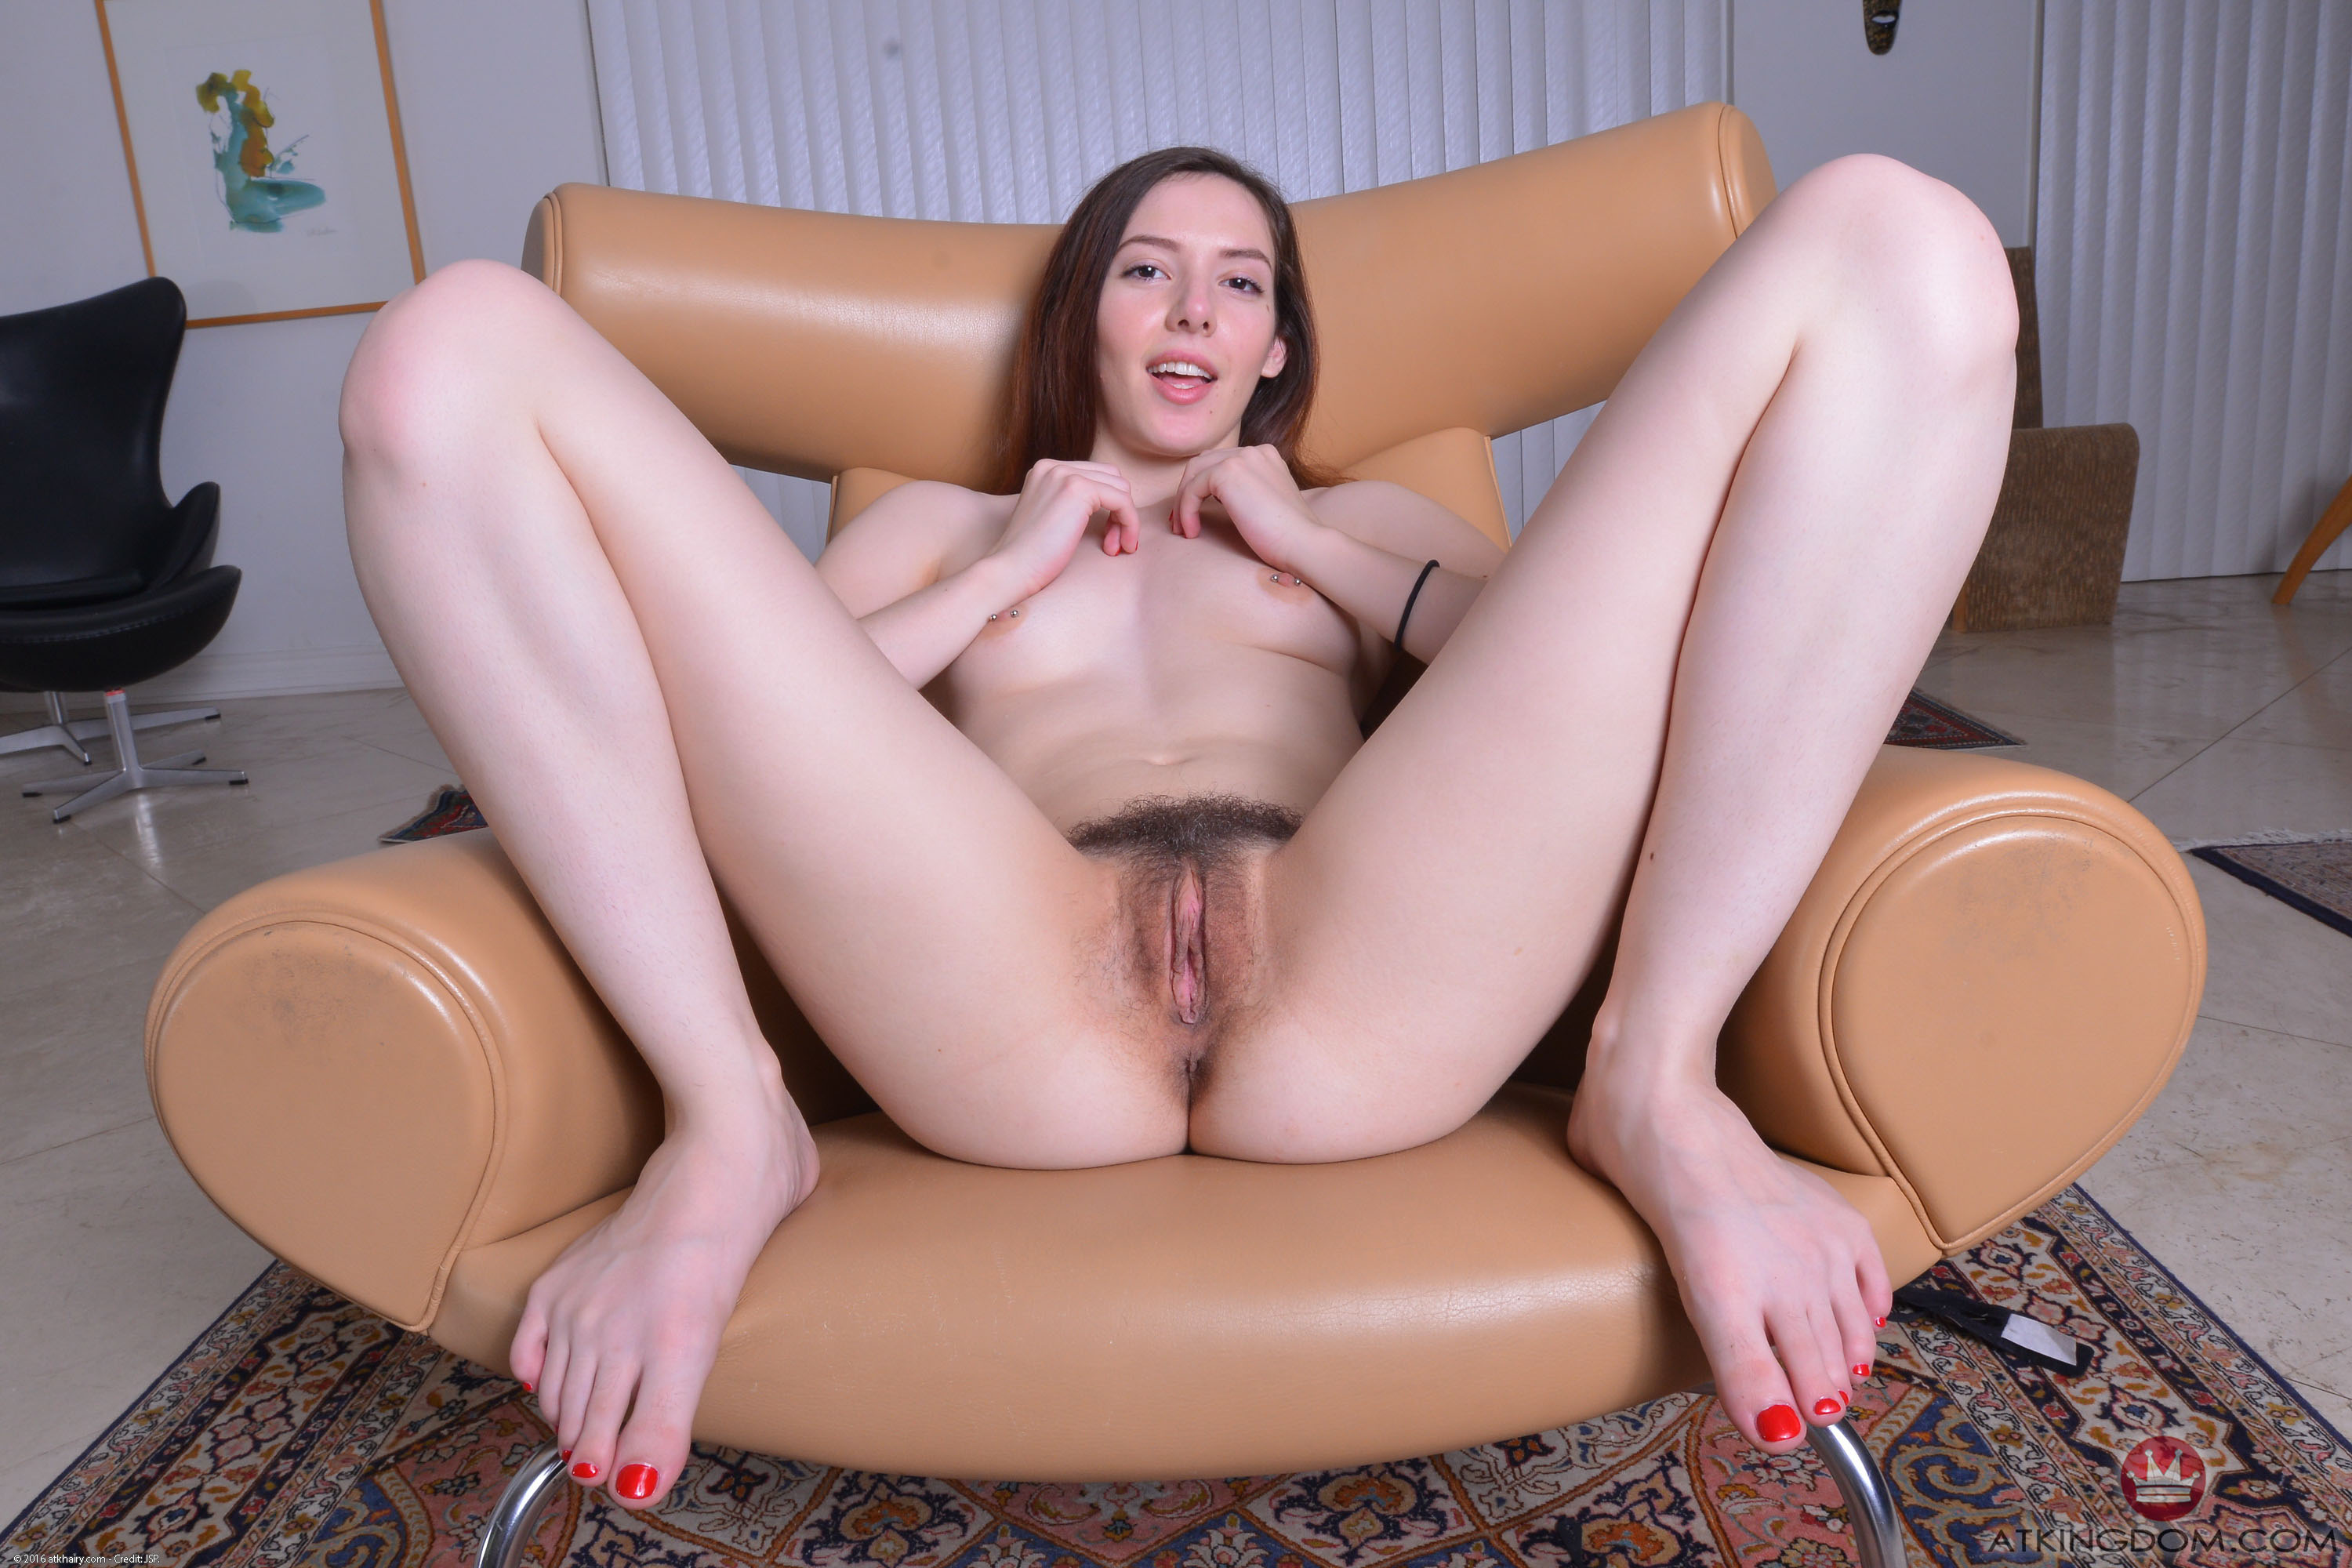 Ember ATK-Hairy Pictures and Videos - PeachyForum